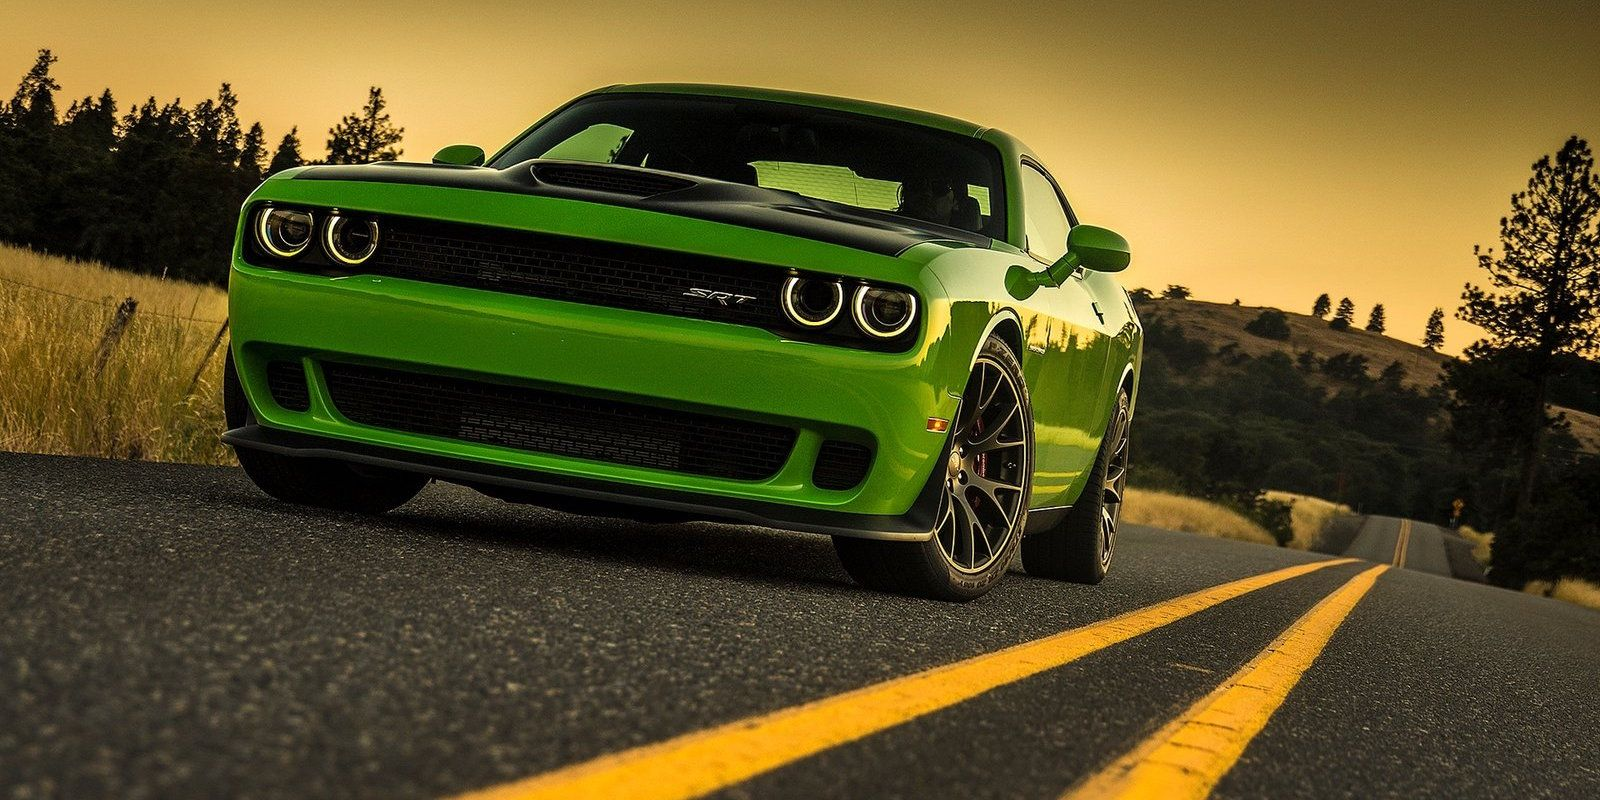 When the second cheapest car on the list is the most powerful, you've got a heck of a deal on your hands. Dodge took the muscle car game to the next level with the 707-hp Challenger and Charger Hellcat.